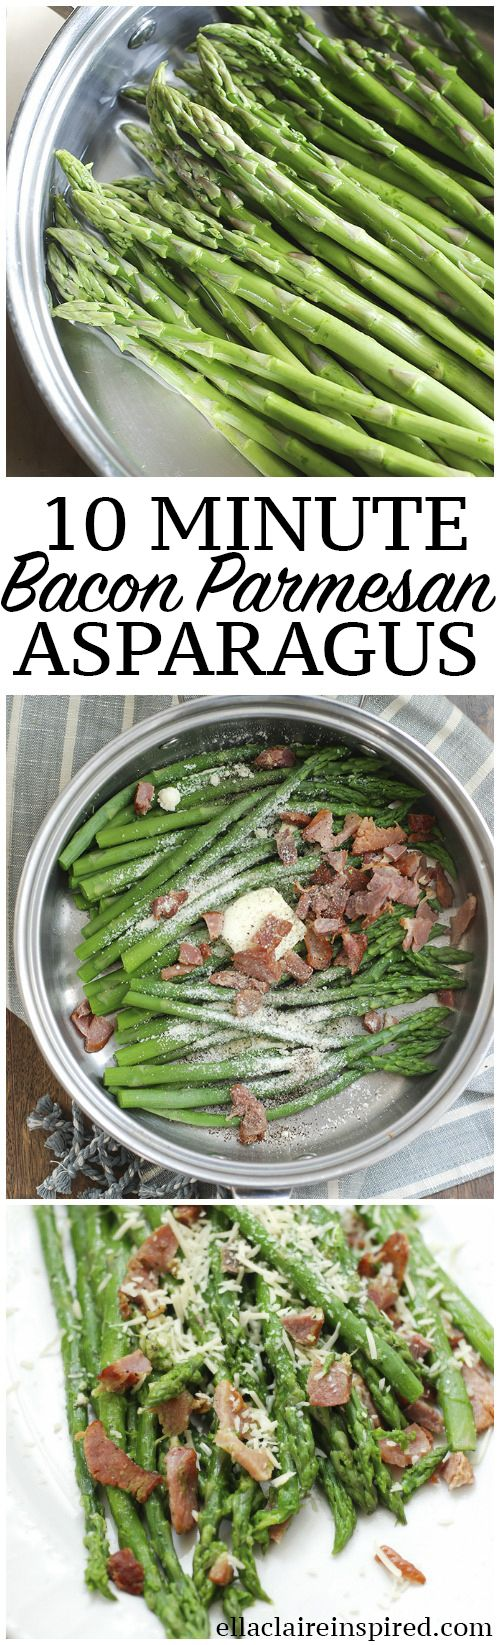 No more mushy flavorless asparagus! This easy 10 minute bacon and parmesan asparagus is so delicious! A total crowd pleaser